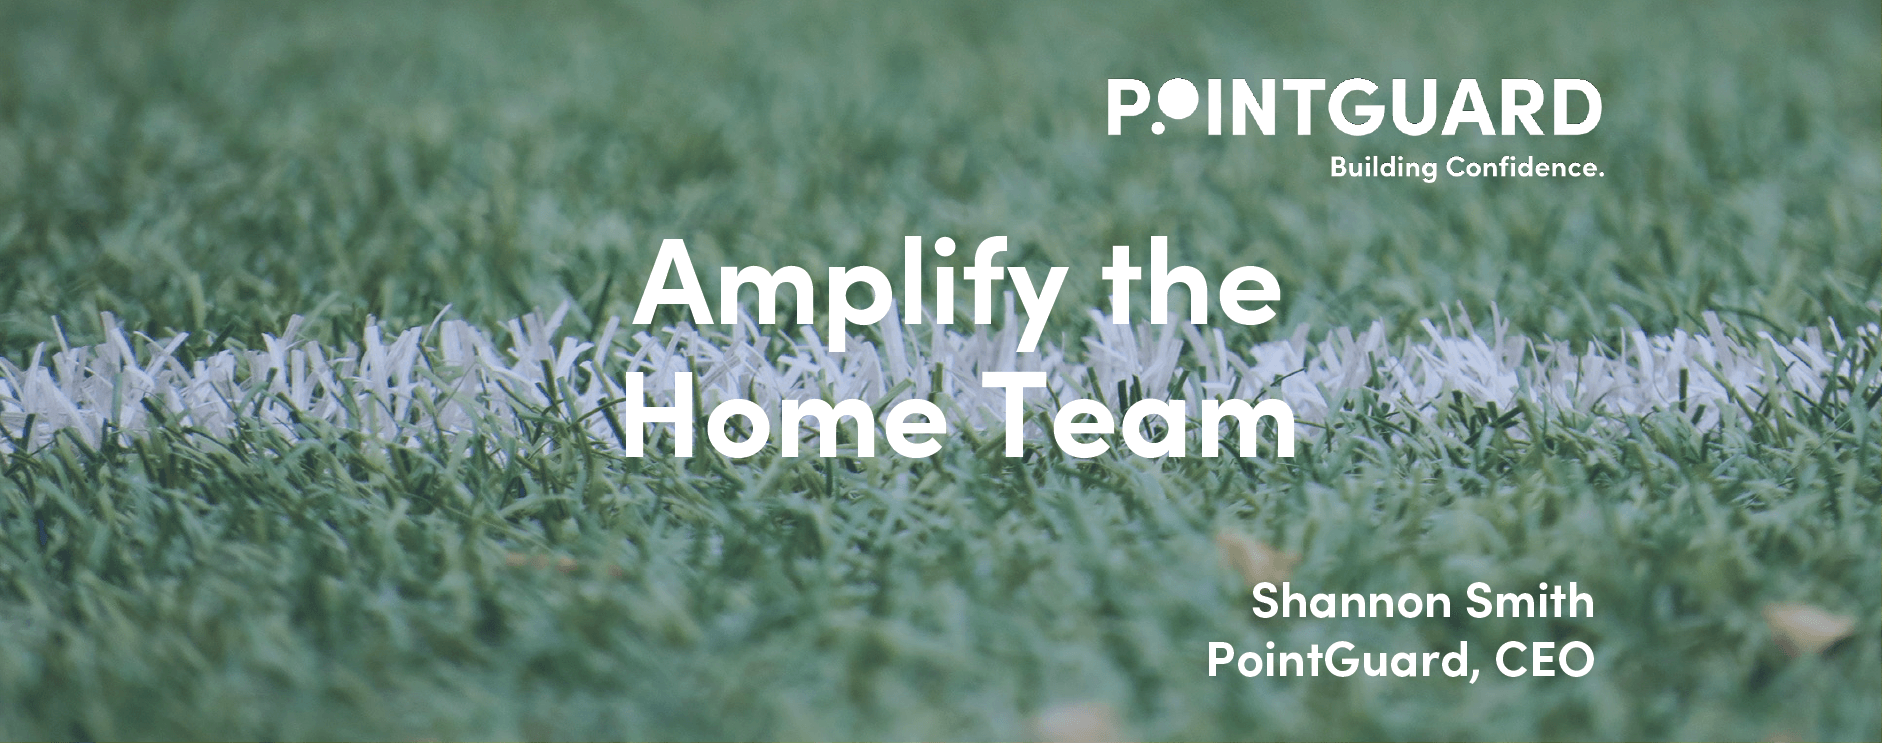 Amplify the Home Team